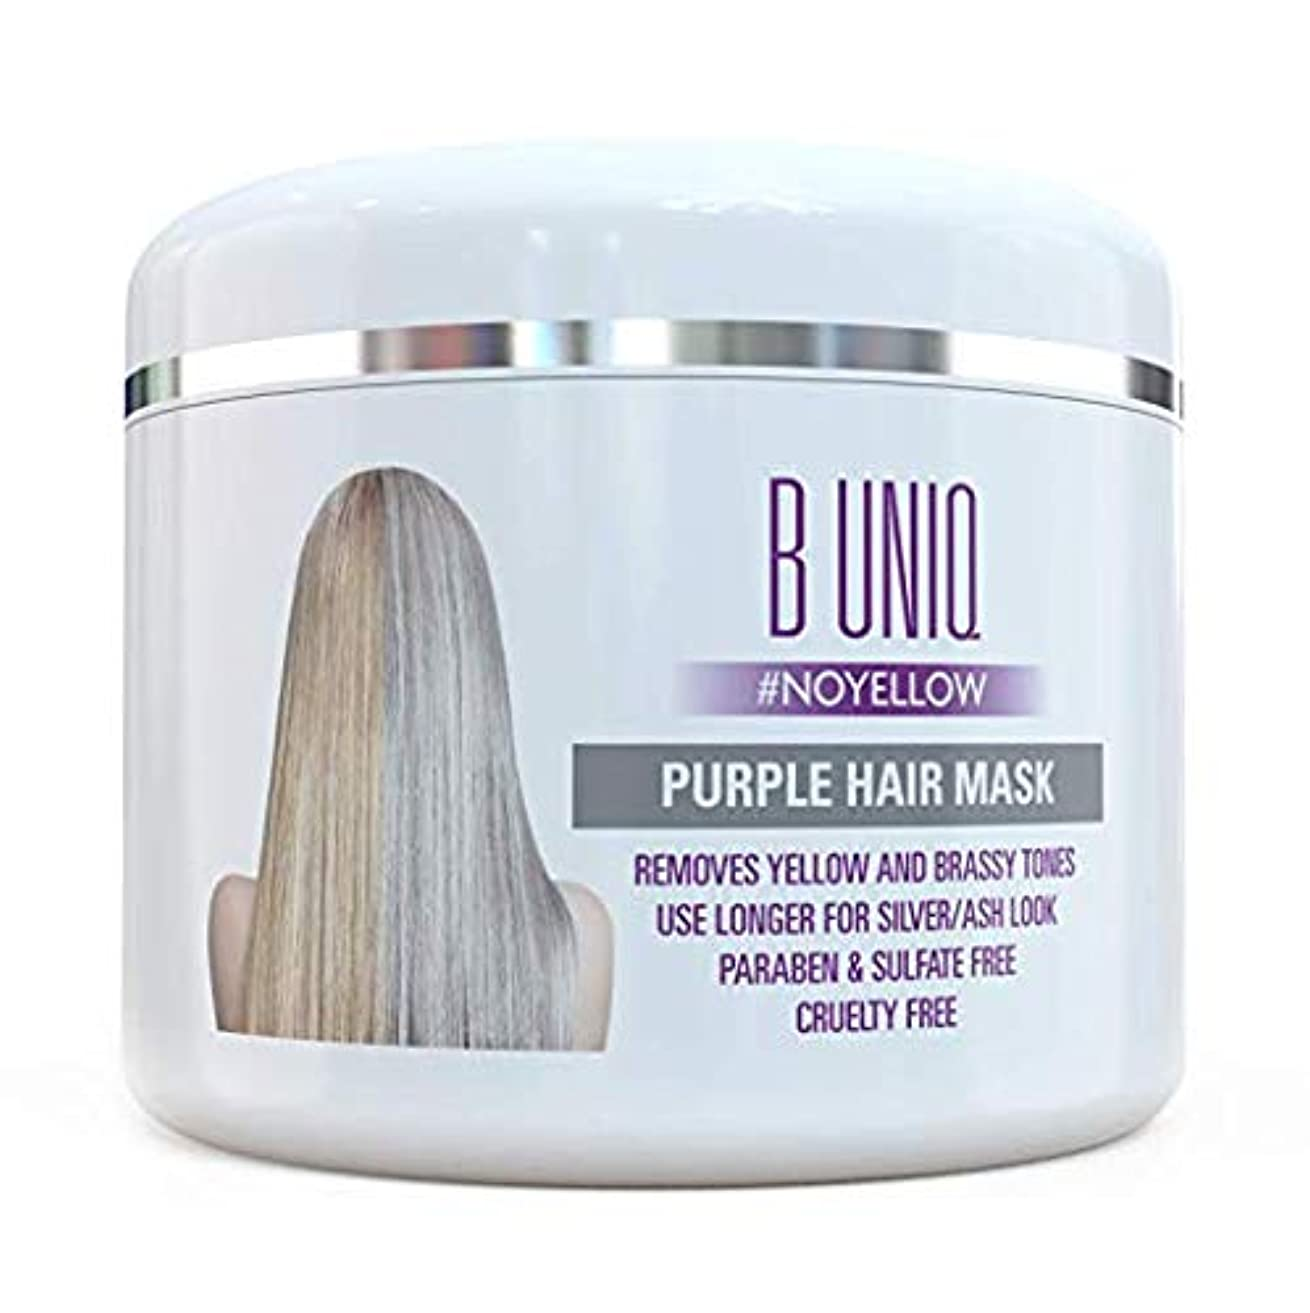 ダンスと闘う膨らみ紫 ヘアマスク ヘアトナー Purple Hair Mask For Blonde, Platinum & Silver Hair - Banish Yellow Hues: Blue Masque to Reduce Brassiness & Condition Dry Damaged Hair - Sulfate Free Toner - 7.27 Fl. Oz / 215 ml 海外直送品 [並行輸入品]